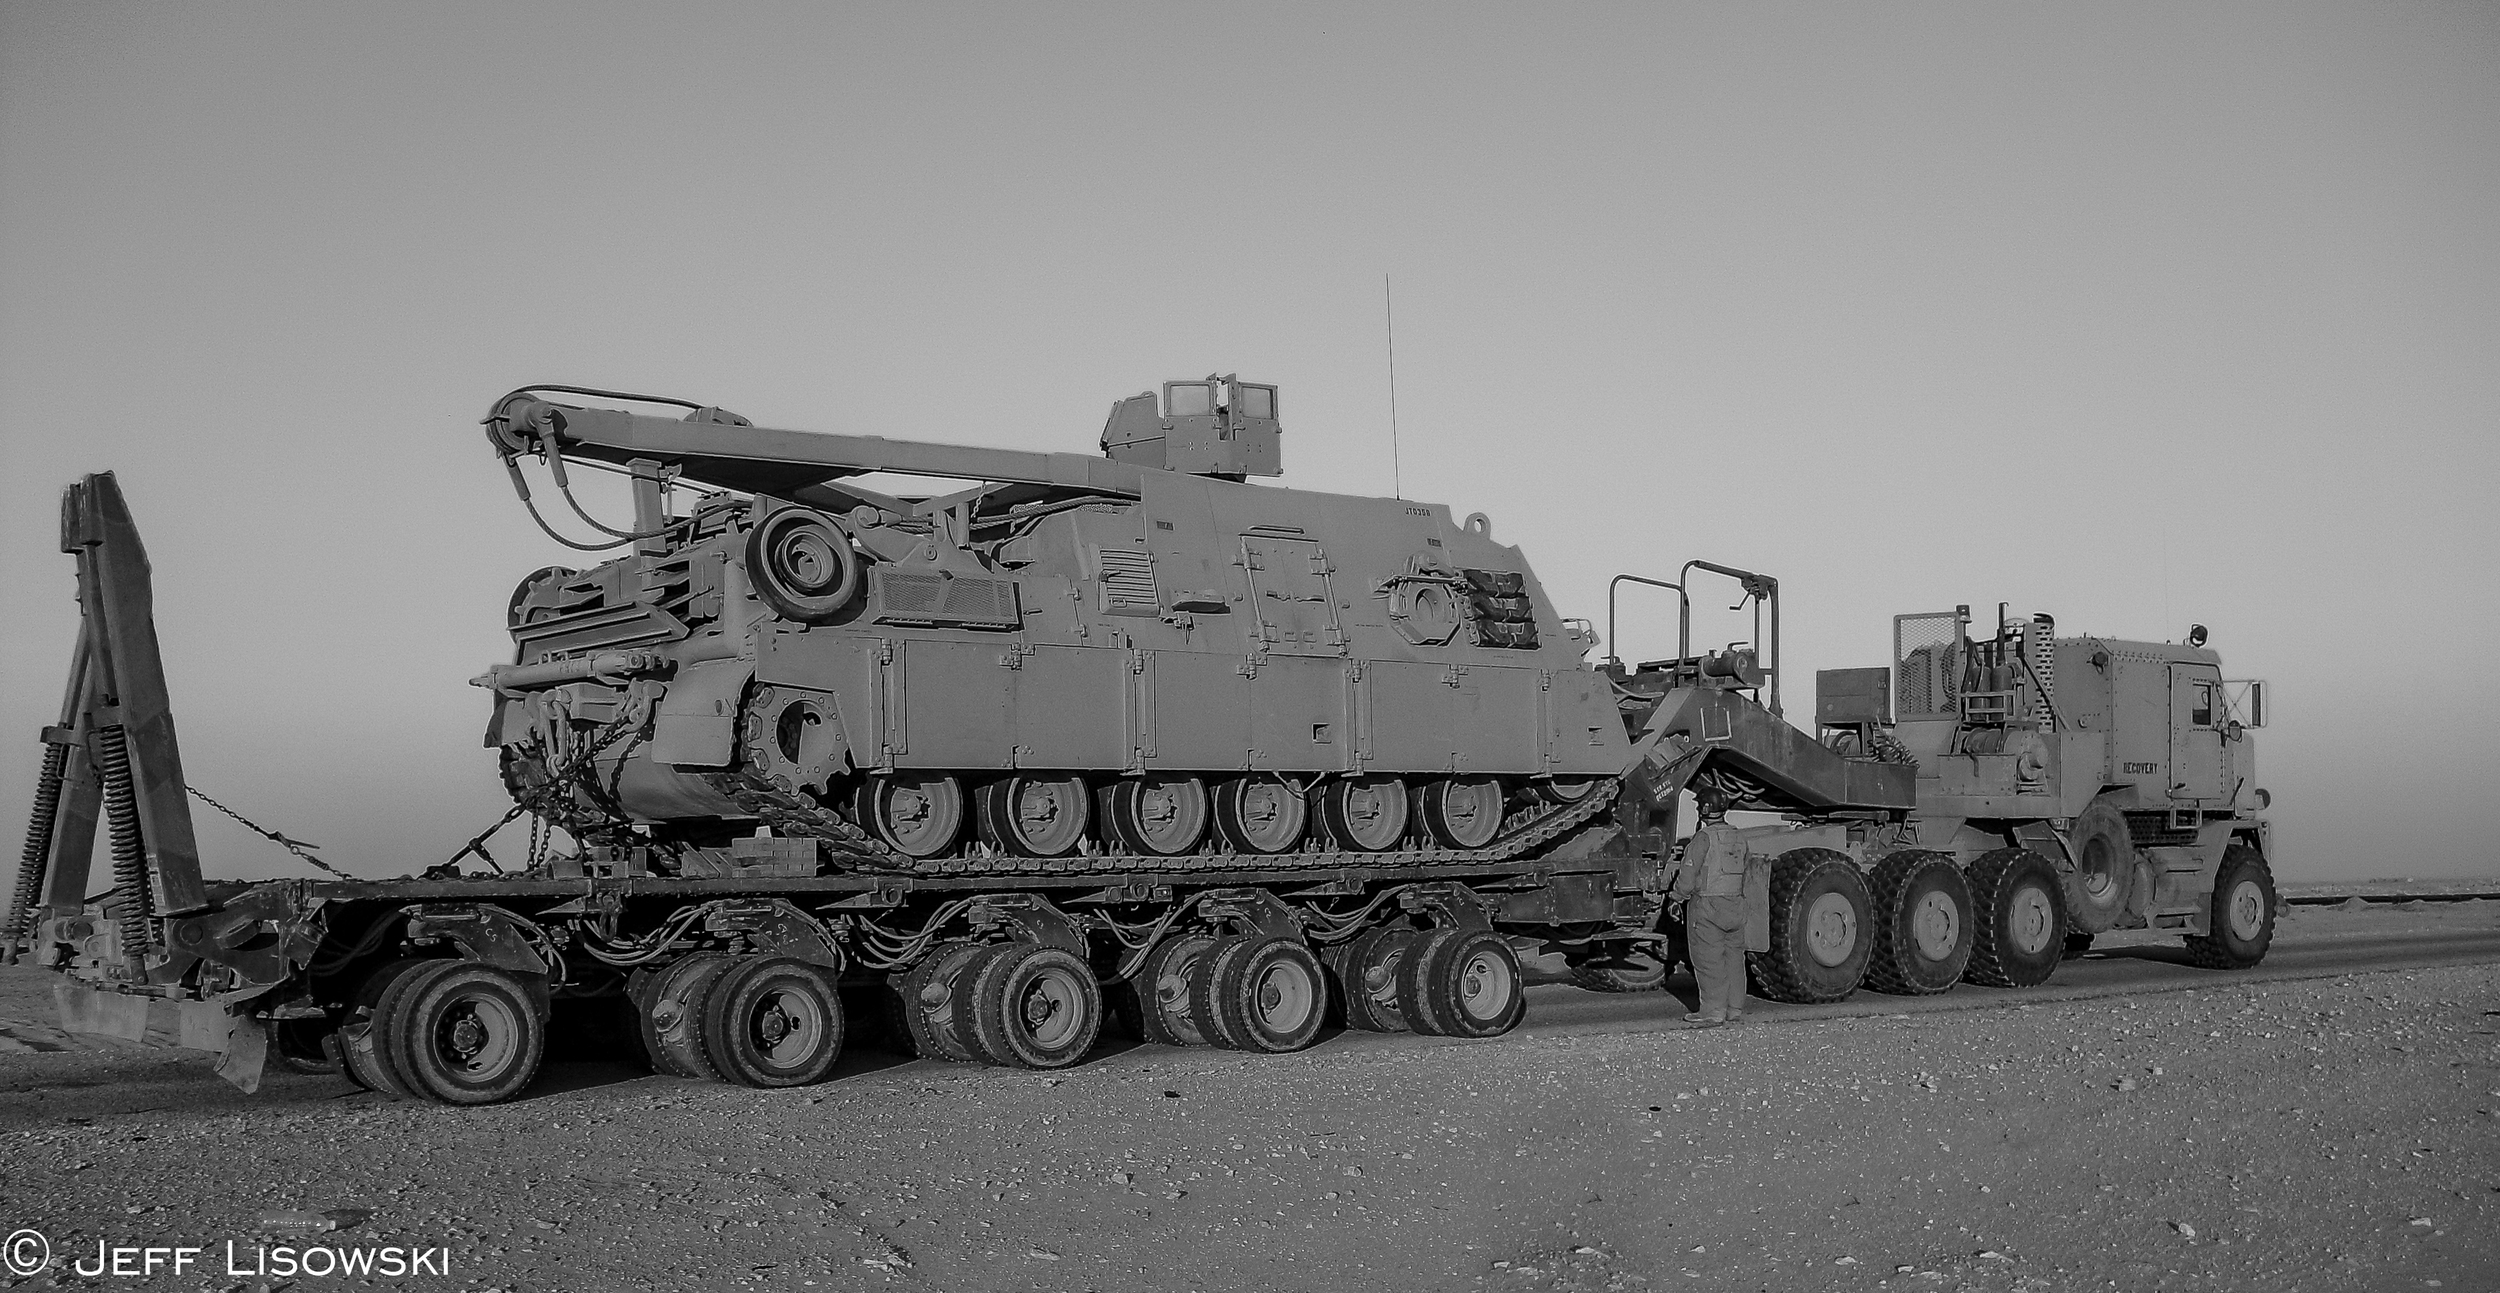 Our HET with an M88 tank recovery vehicle. (140,000 lb. payload)January 2010 in the Al Najaf desert.